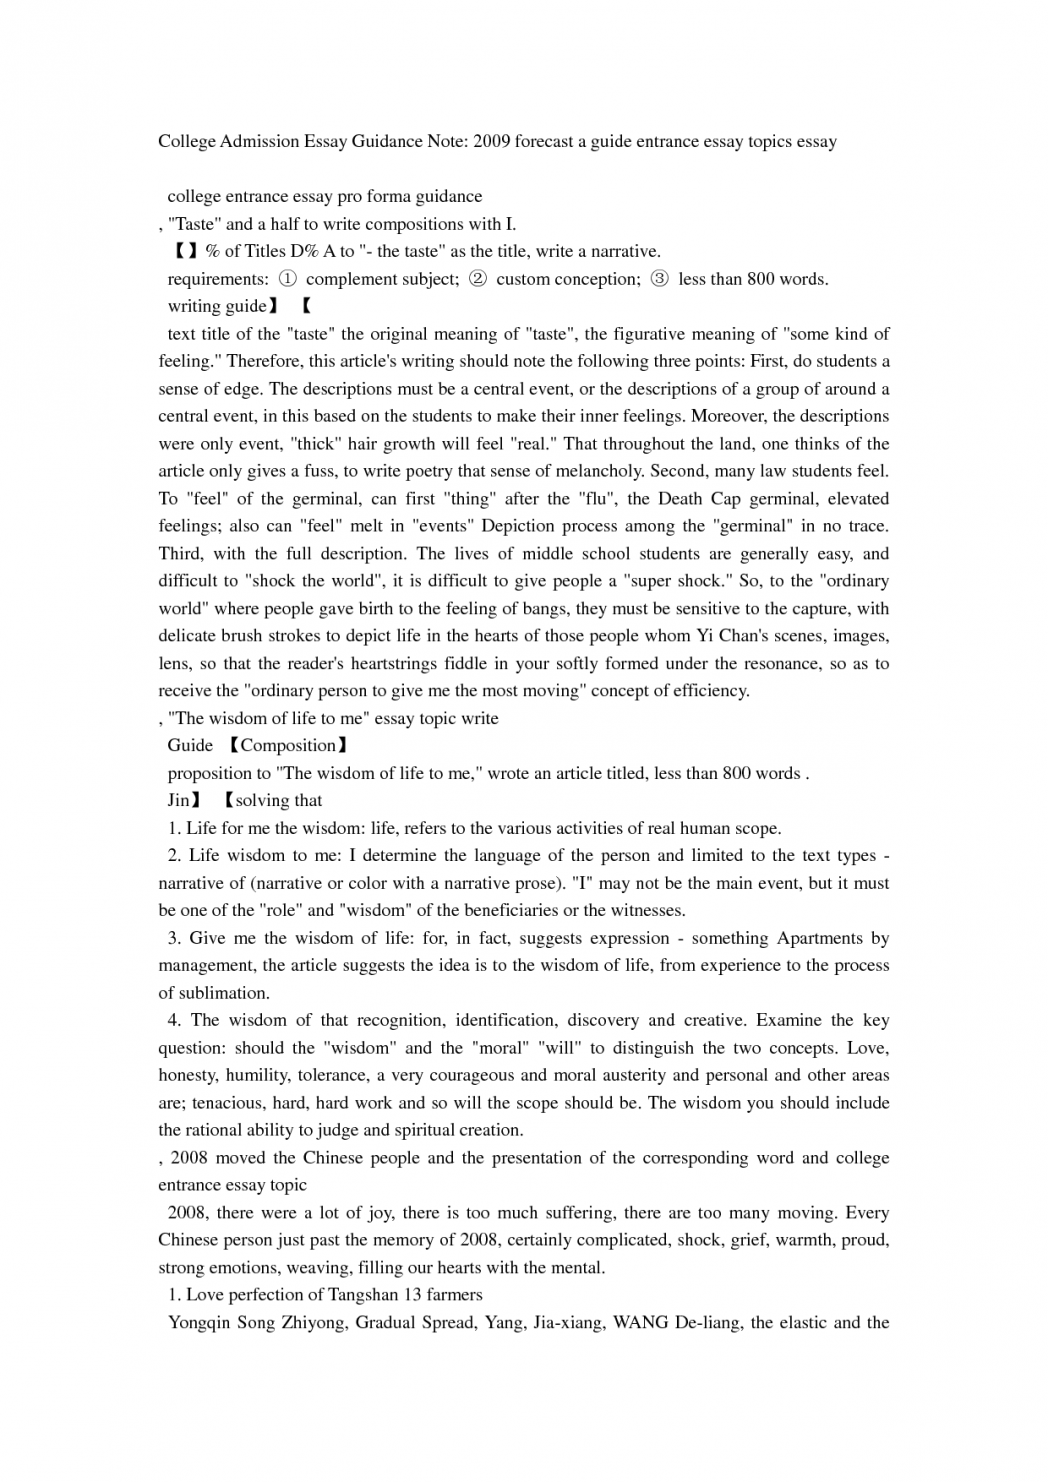 Article of eu charter service